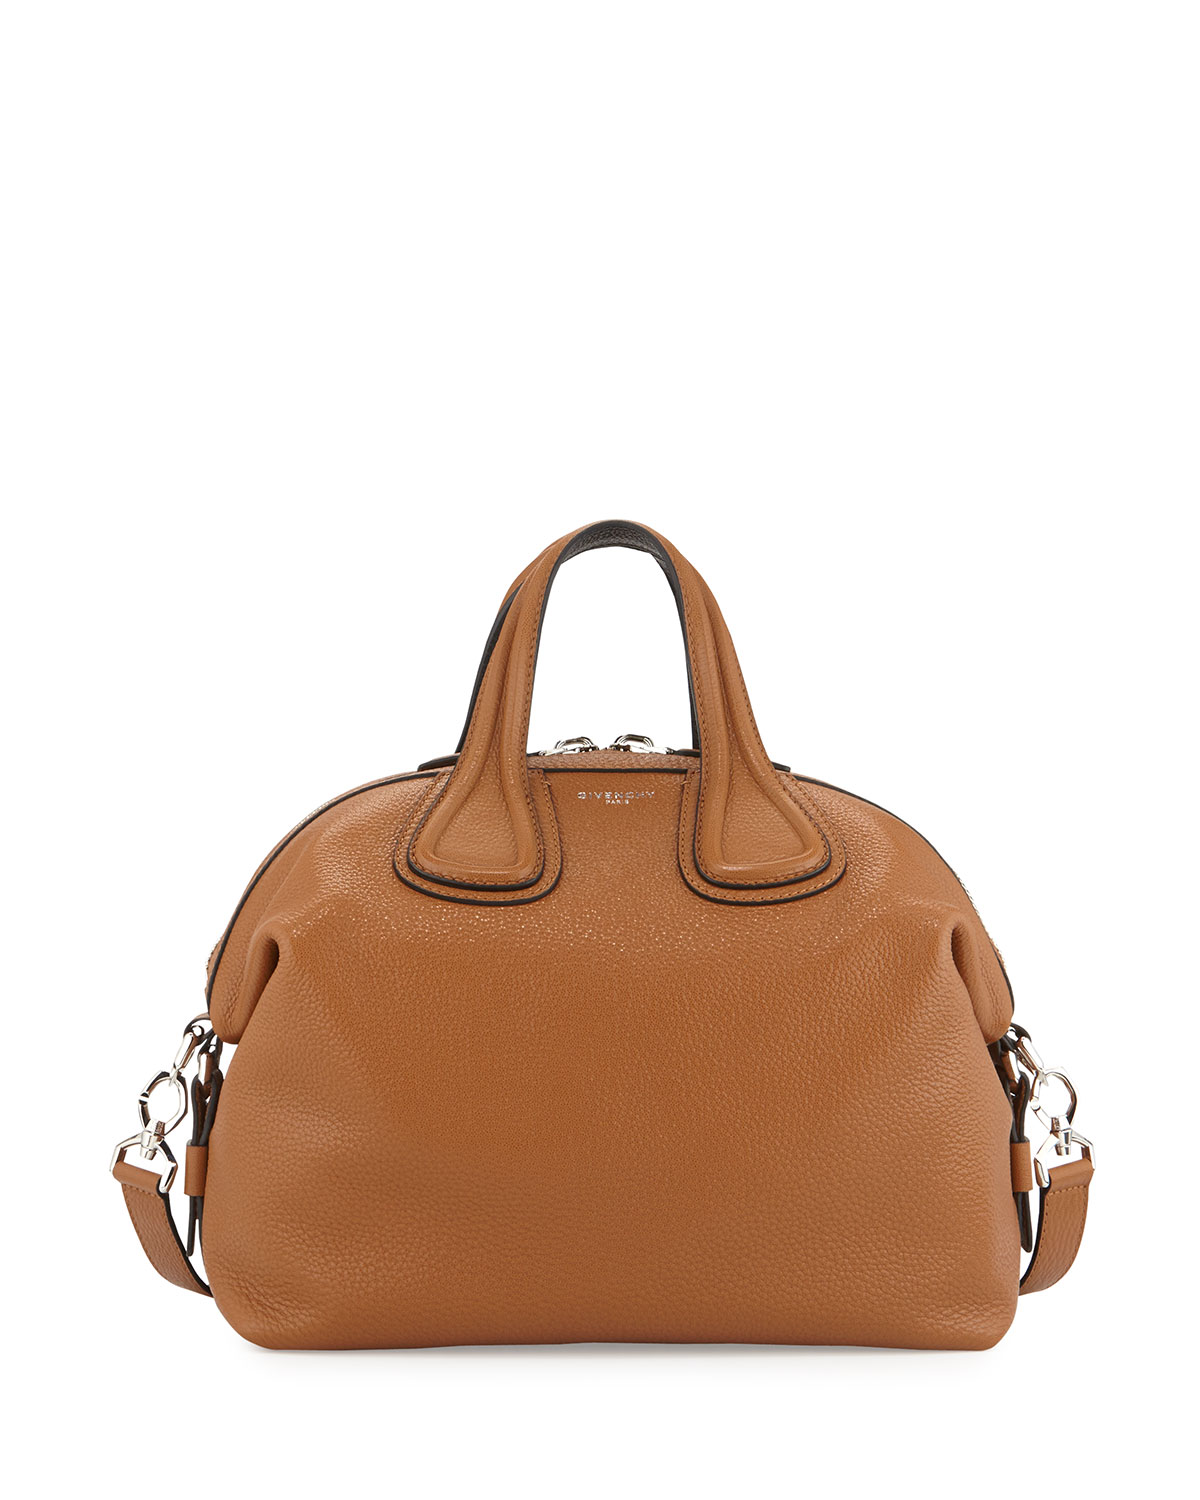 fe4396641d Givenchy Nightingale Small Leather Satchel Bag